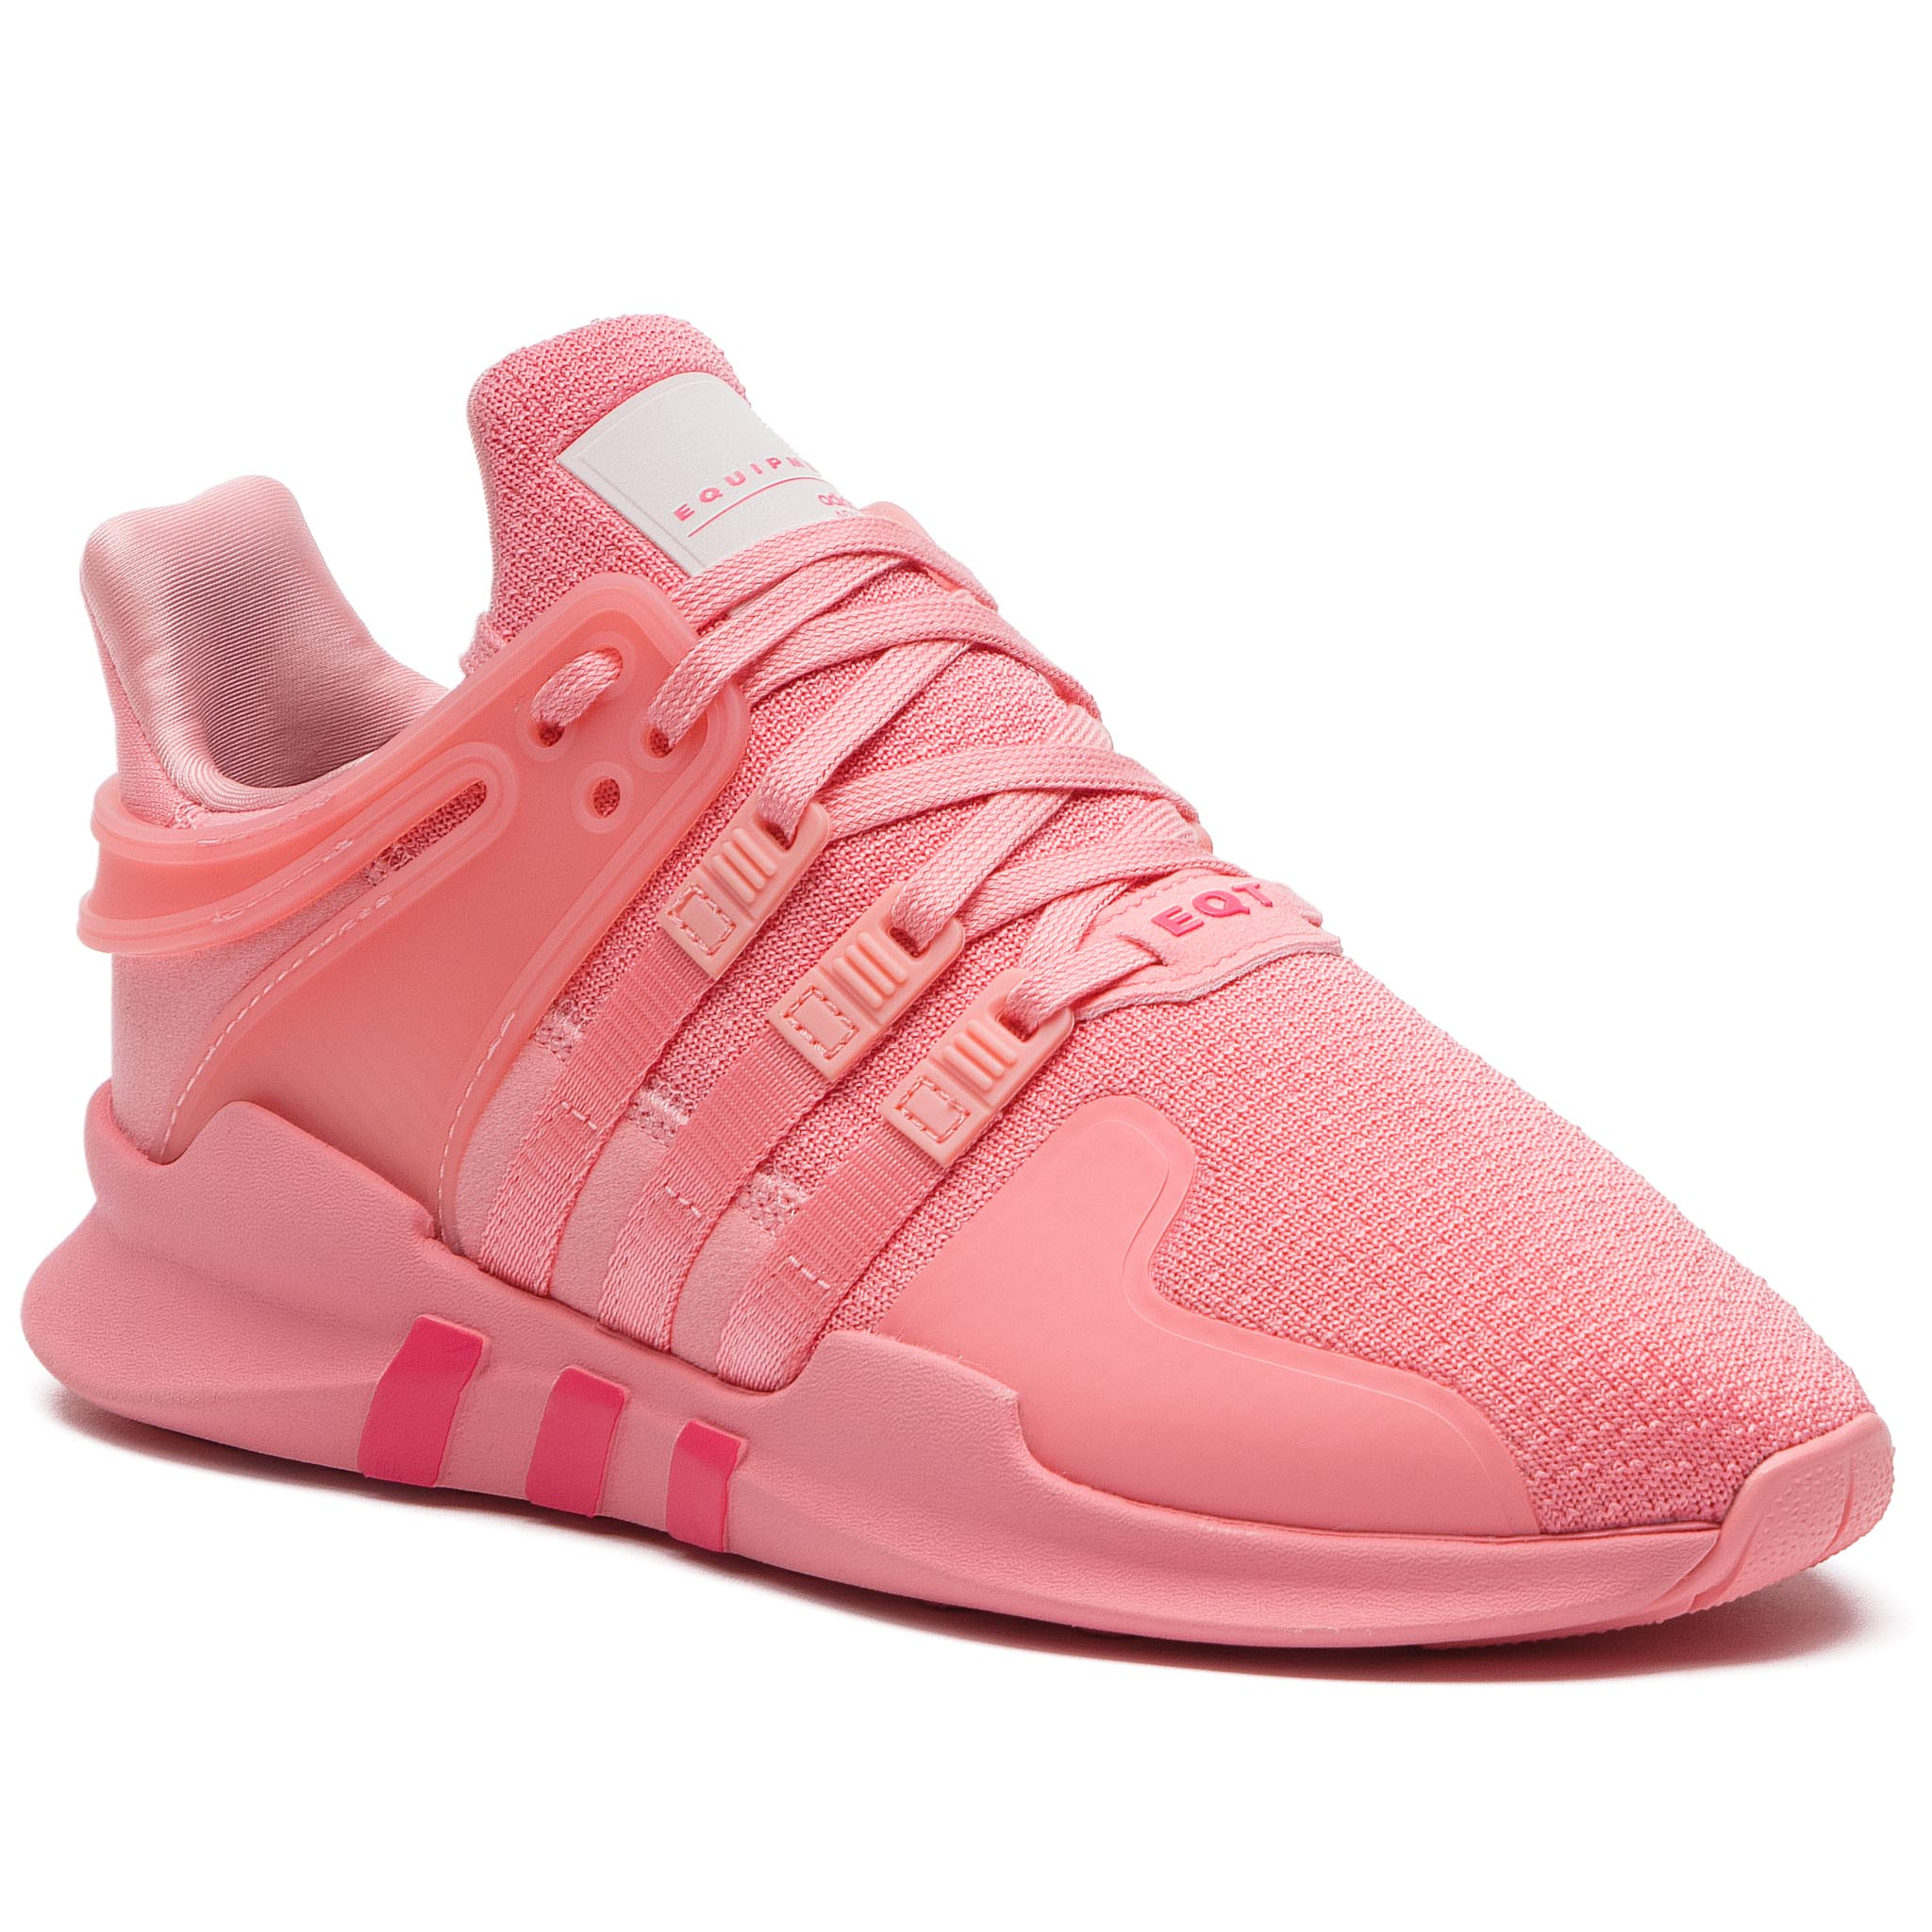 Topánky adidas - Eqt Support Adv W B37541 Suppop Suppop Ftwwht ... 12efd73794